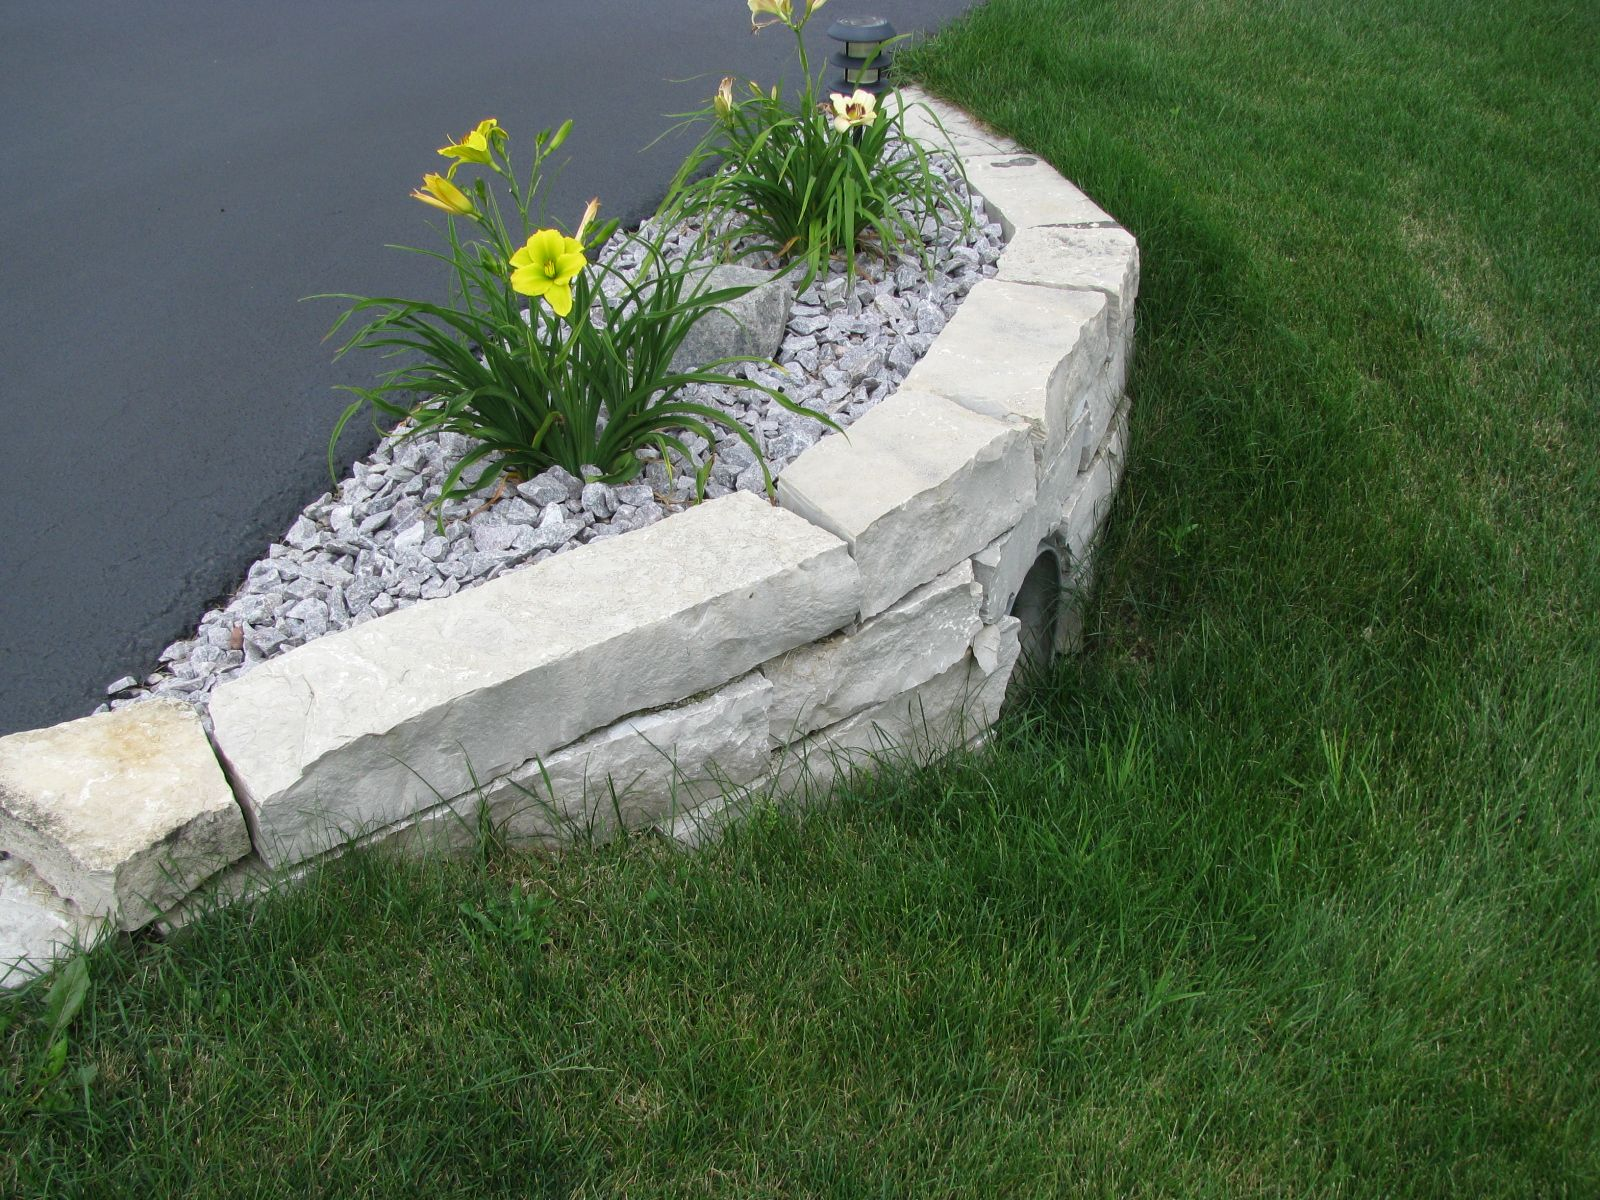 driveway culvert stone wall culverts driveways. Black Bedroom Furniture Sets. Home Design Ideas